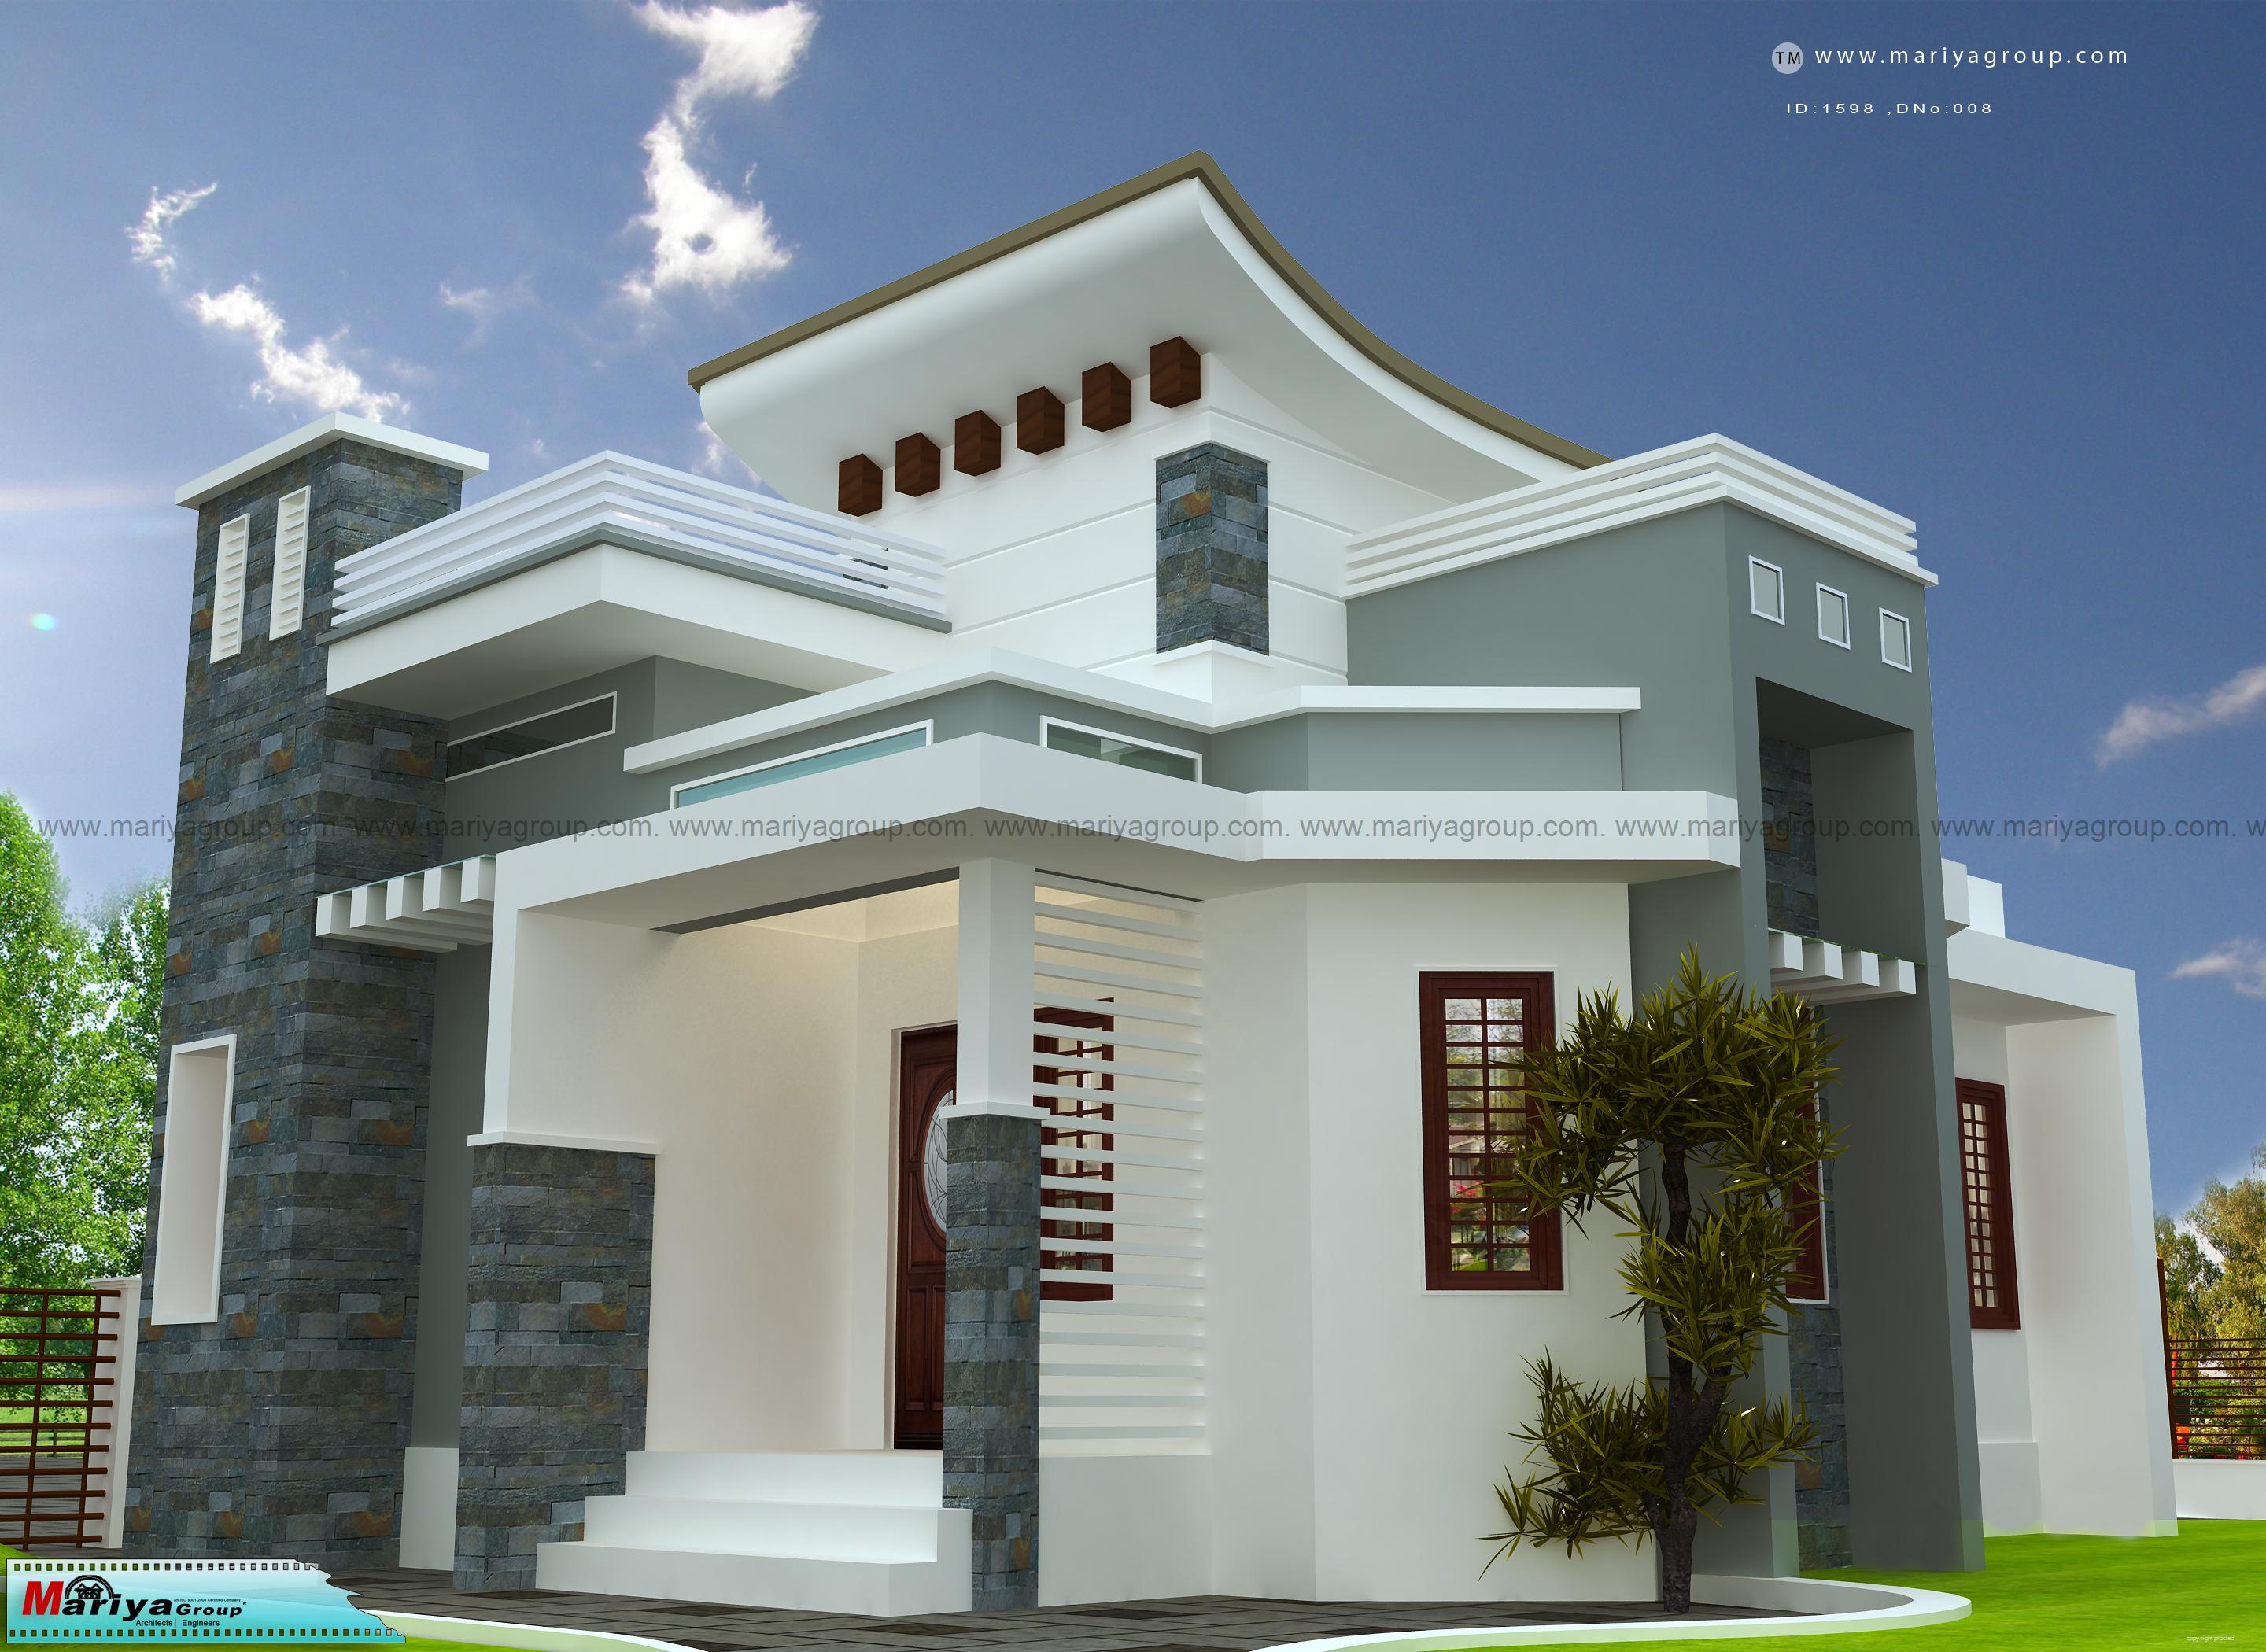 Budget home plans in kerala interior designers in kerala for Budget home builders